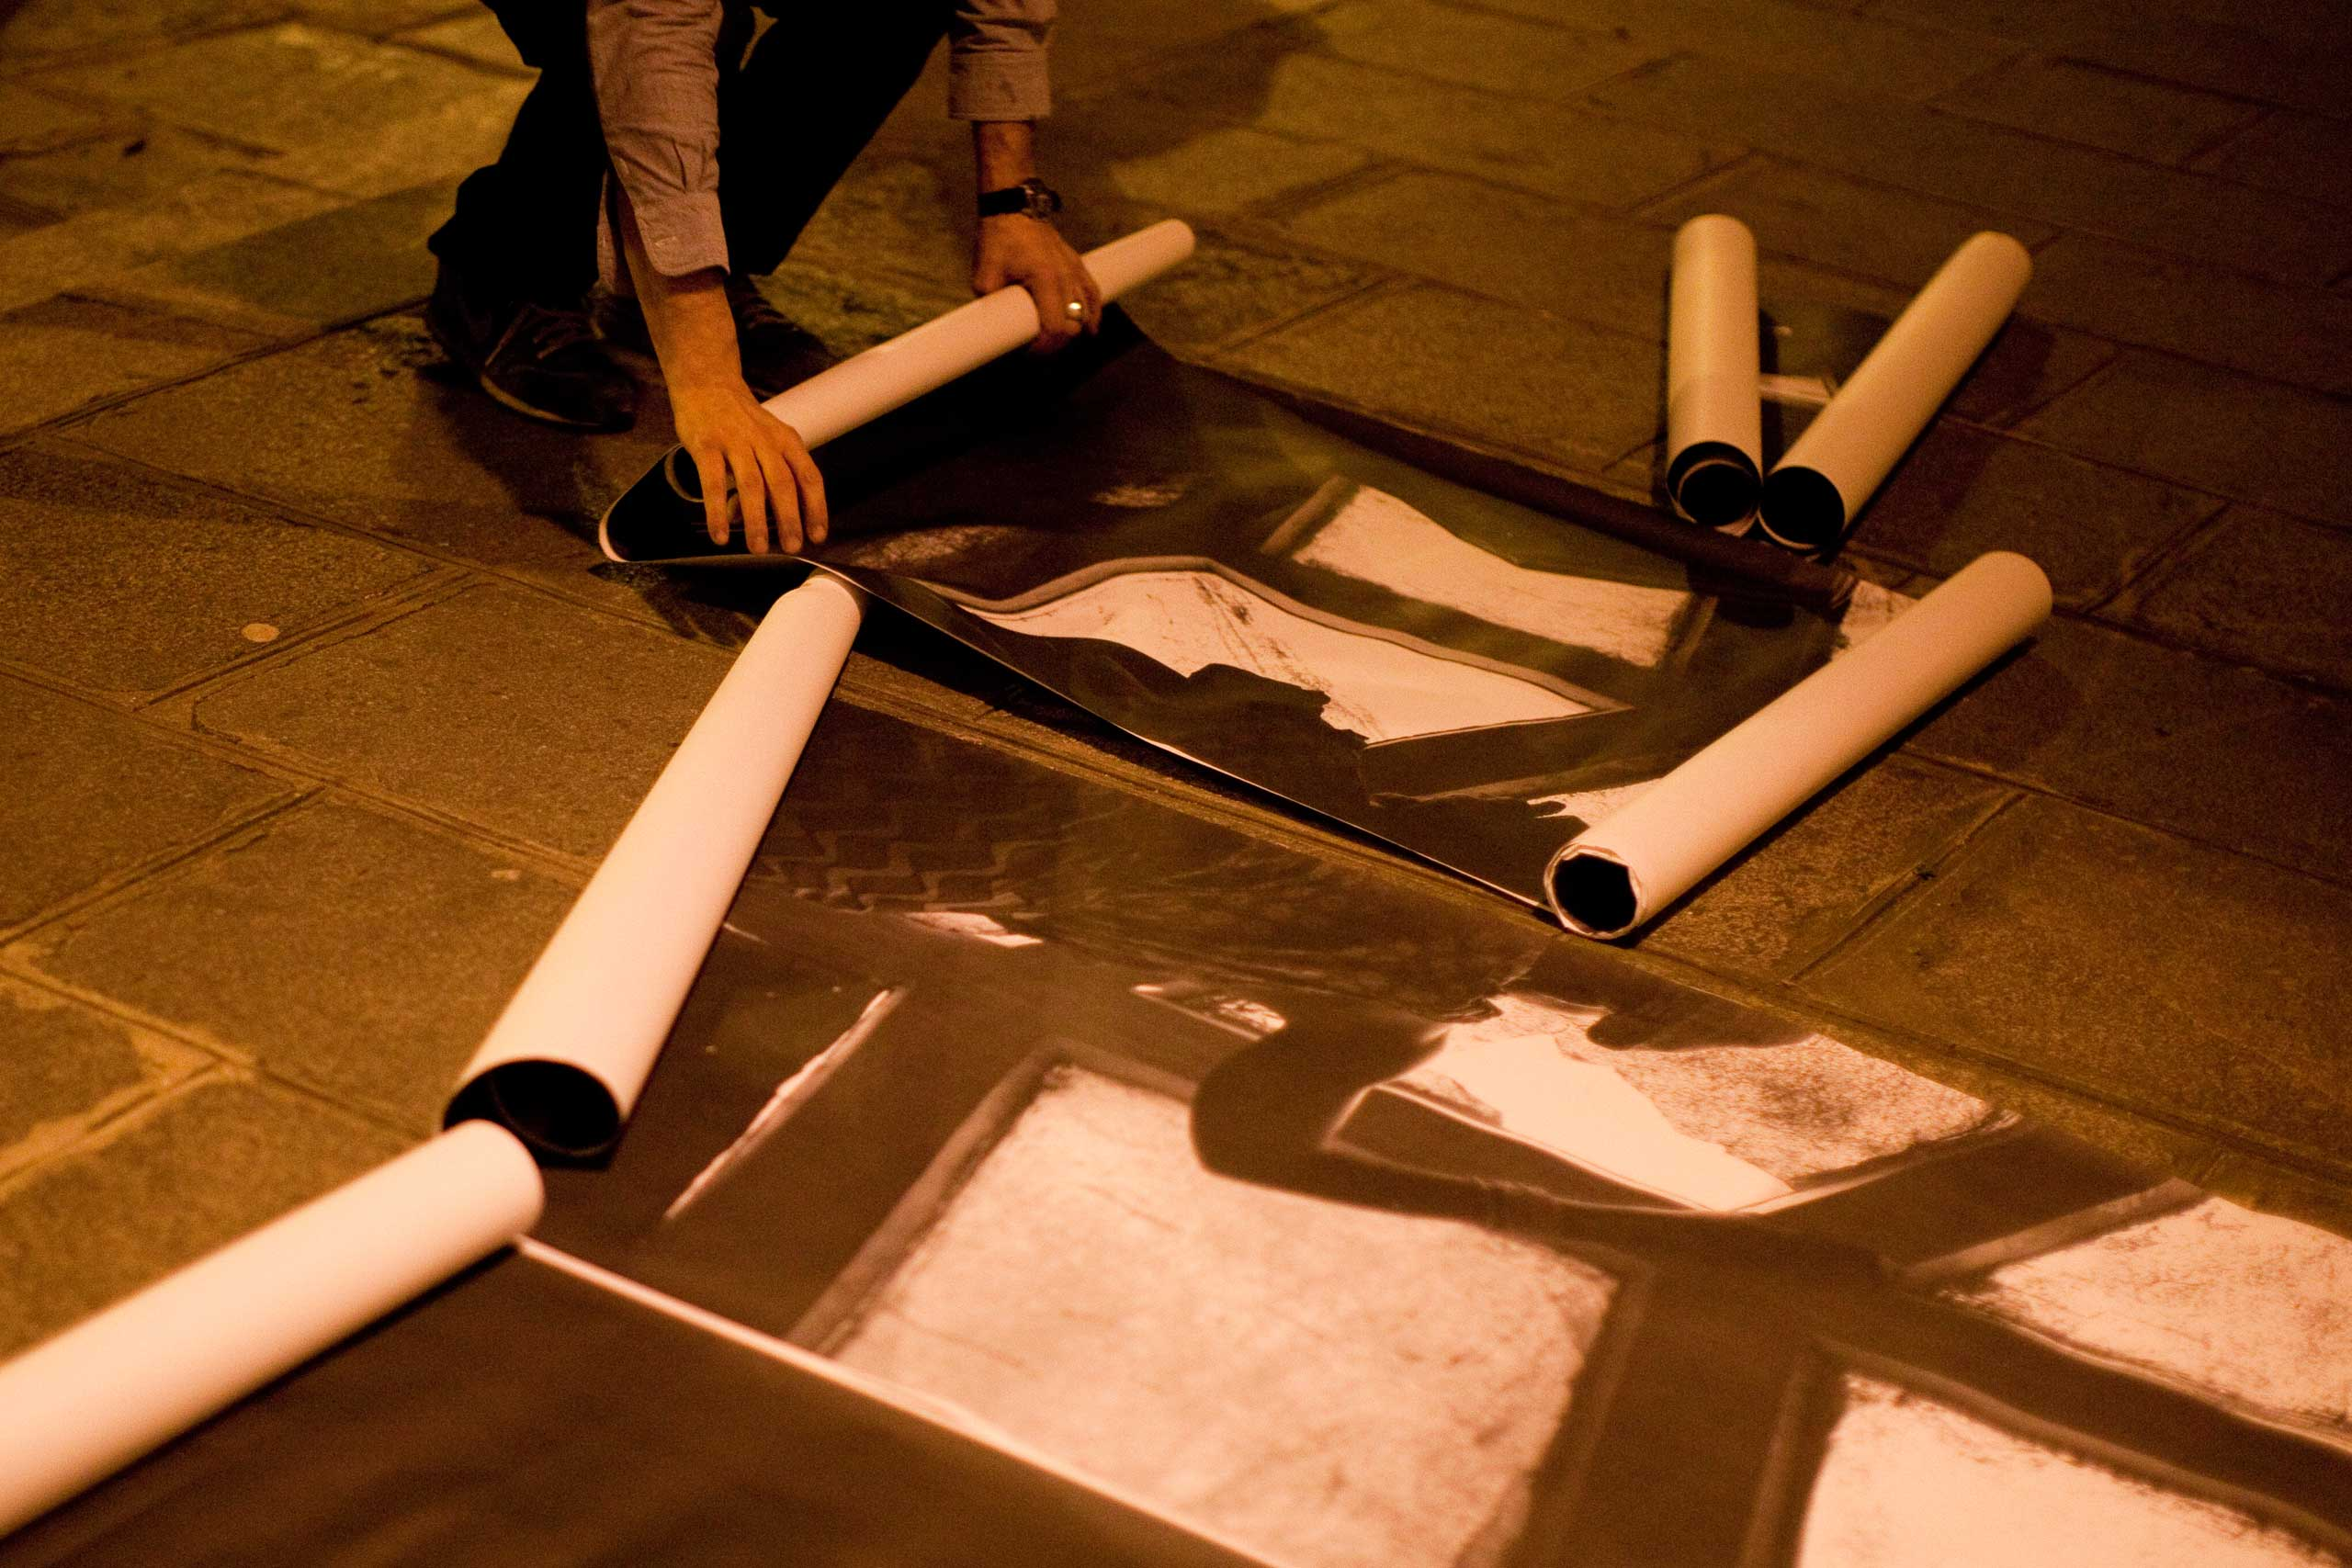 French photographer Pierre Terdjman prepares his posters as part of his Dysturb street art project.